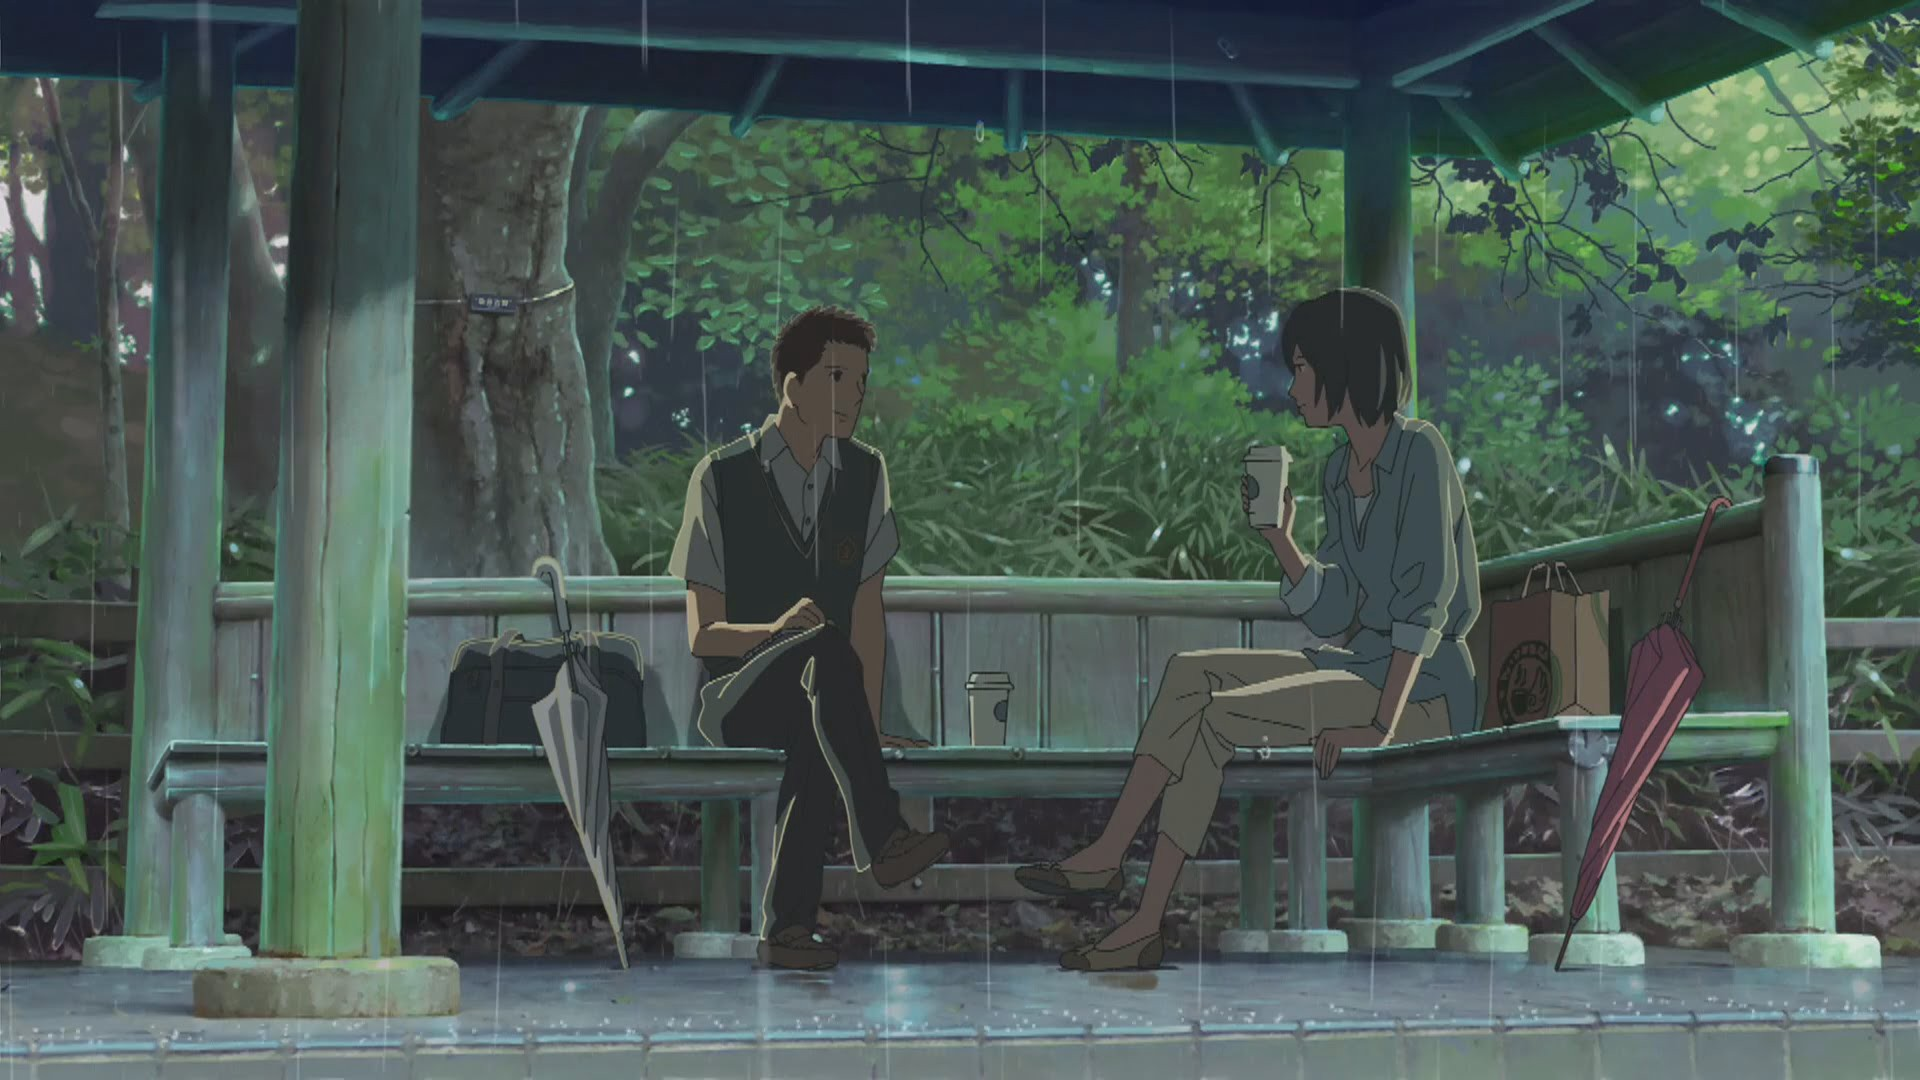 An Analysis Of Makoto Shinkai S The Garden Of Words